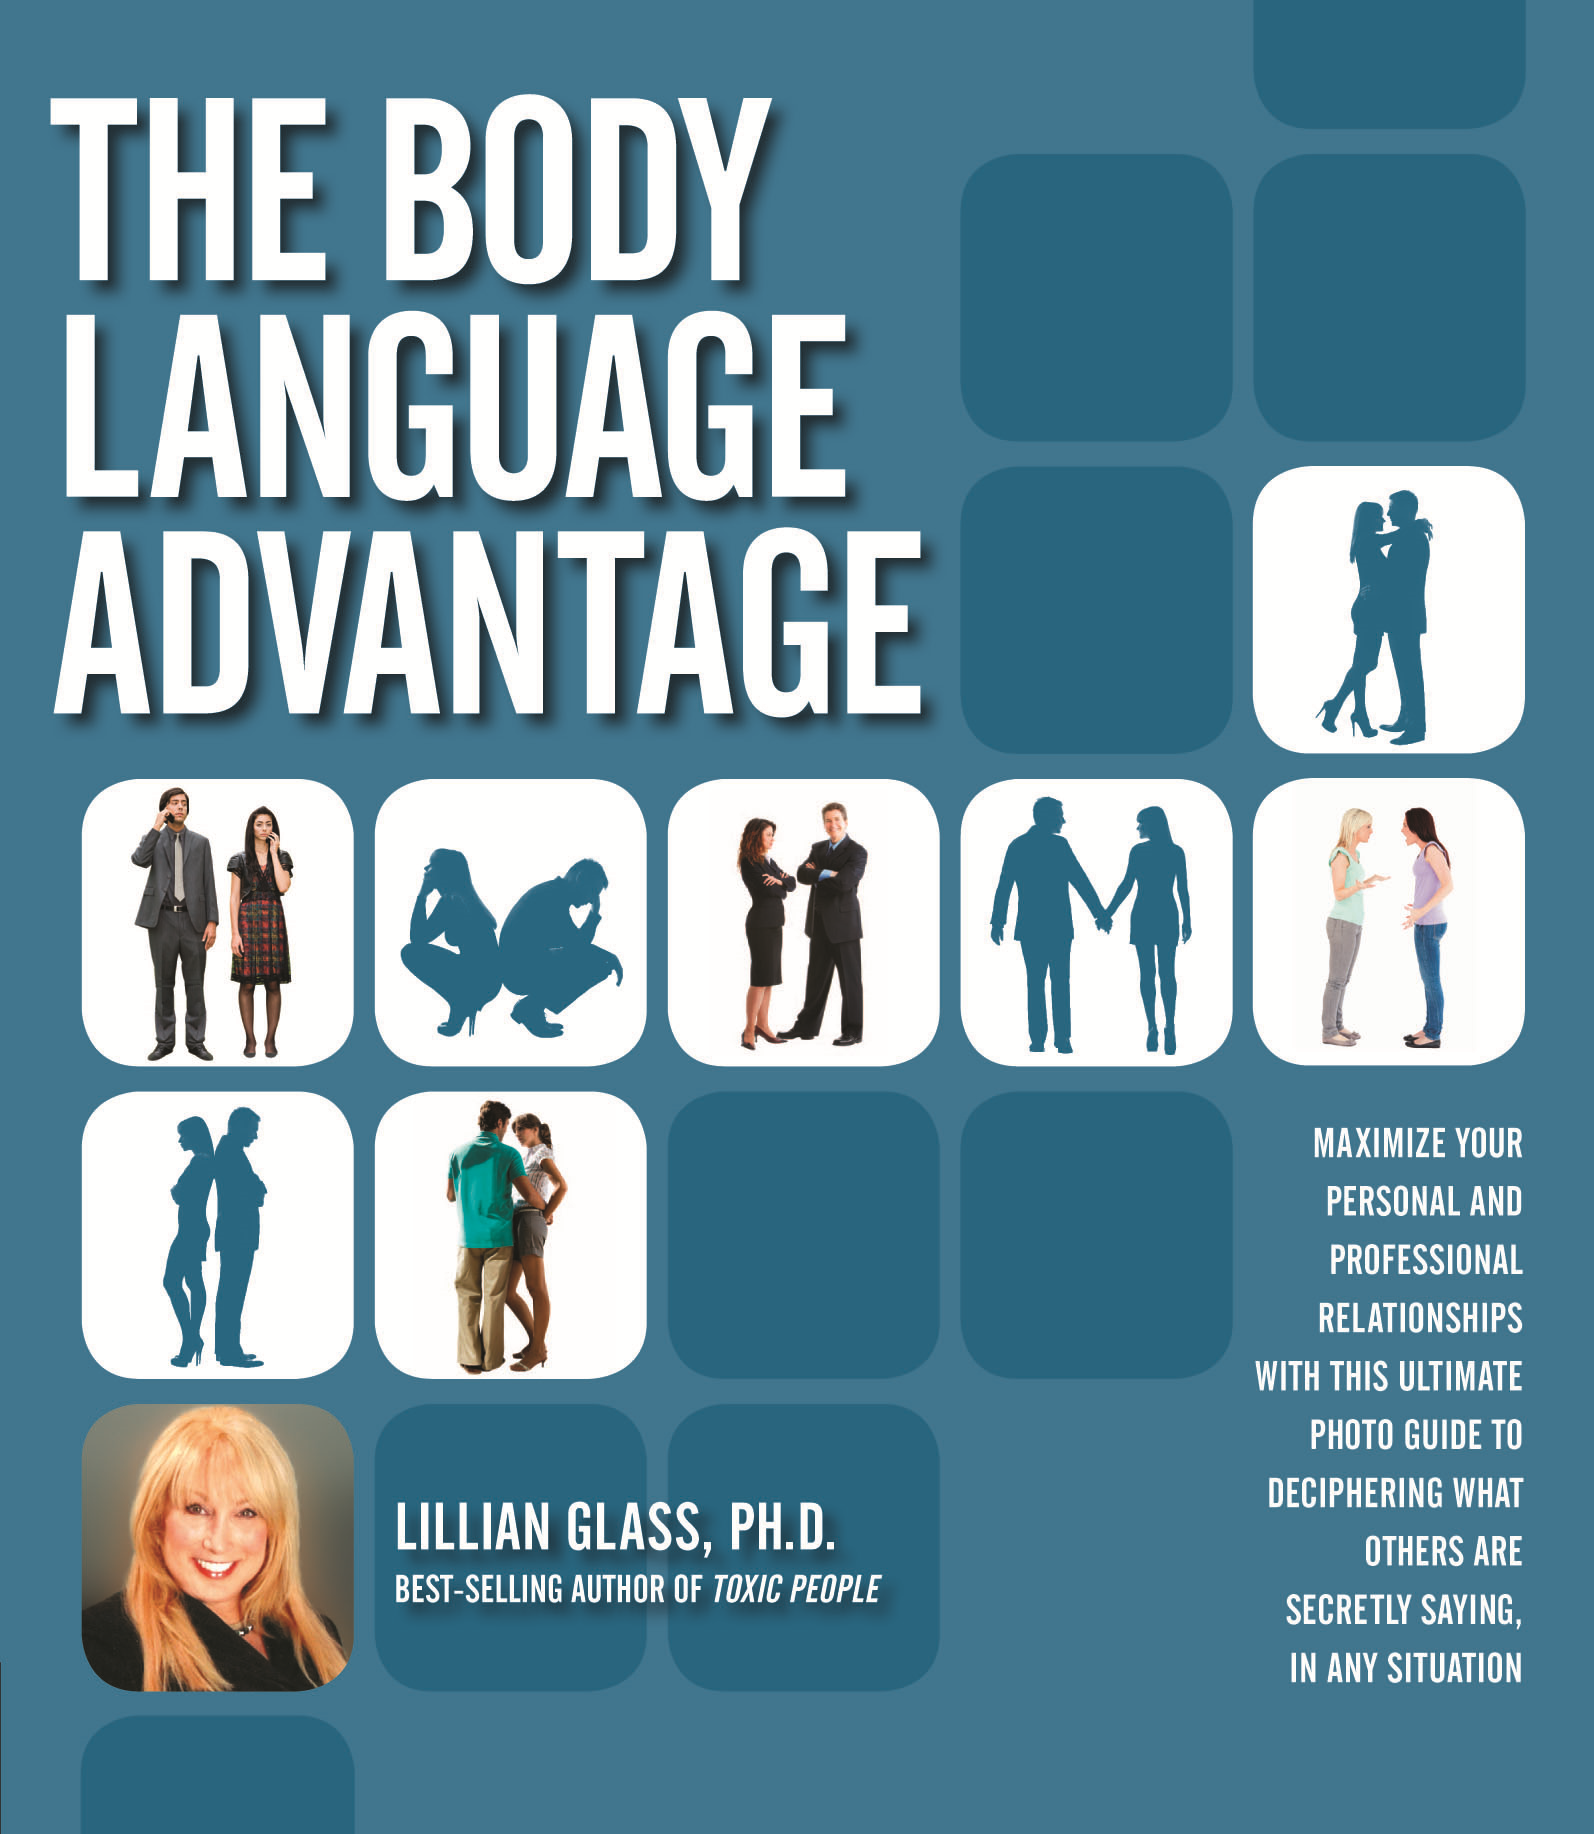 The Body Language Advantage